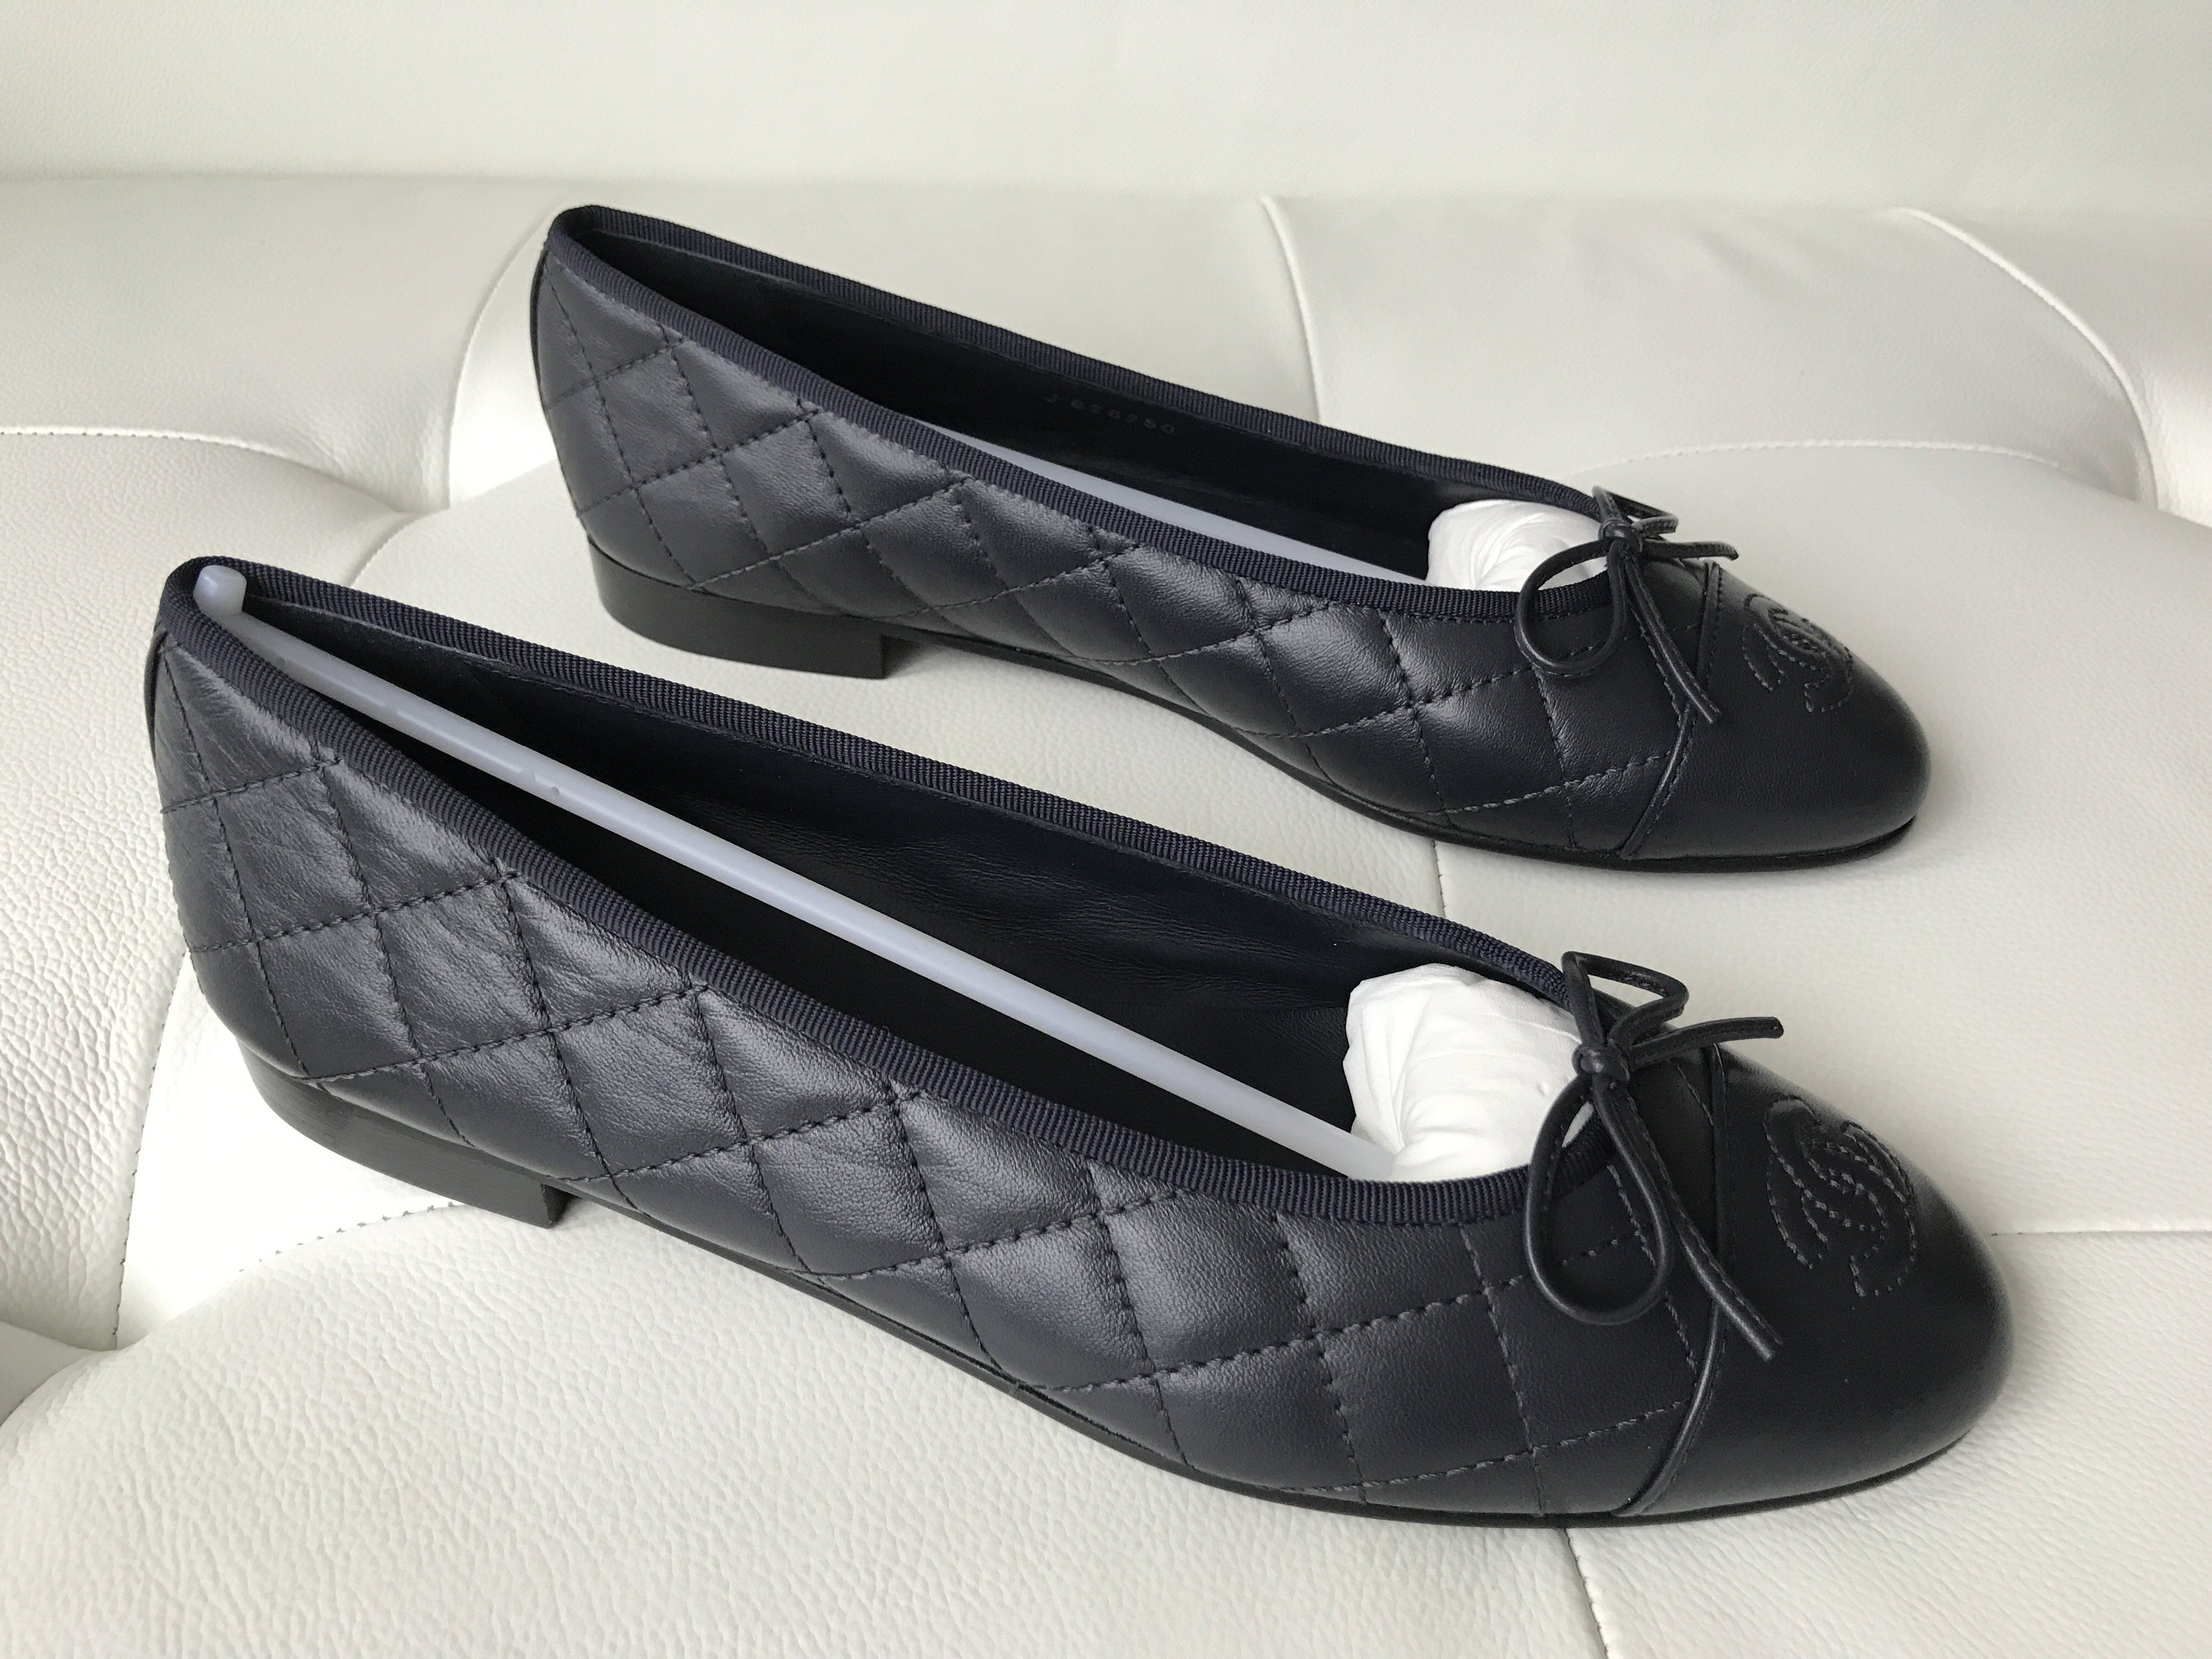 fcd481739aa95 CHANEL BLUE DARK NAVY LEATHER QUILTED CAP TOE BALLET BALLERINA FLAT FLATS  SHOES